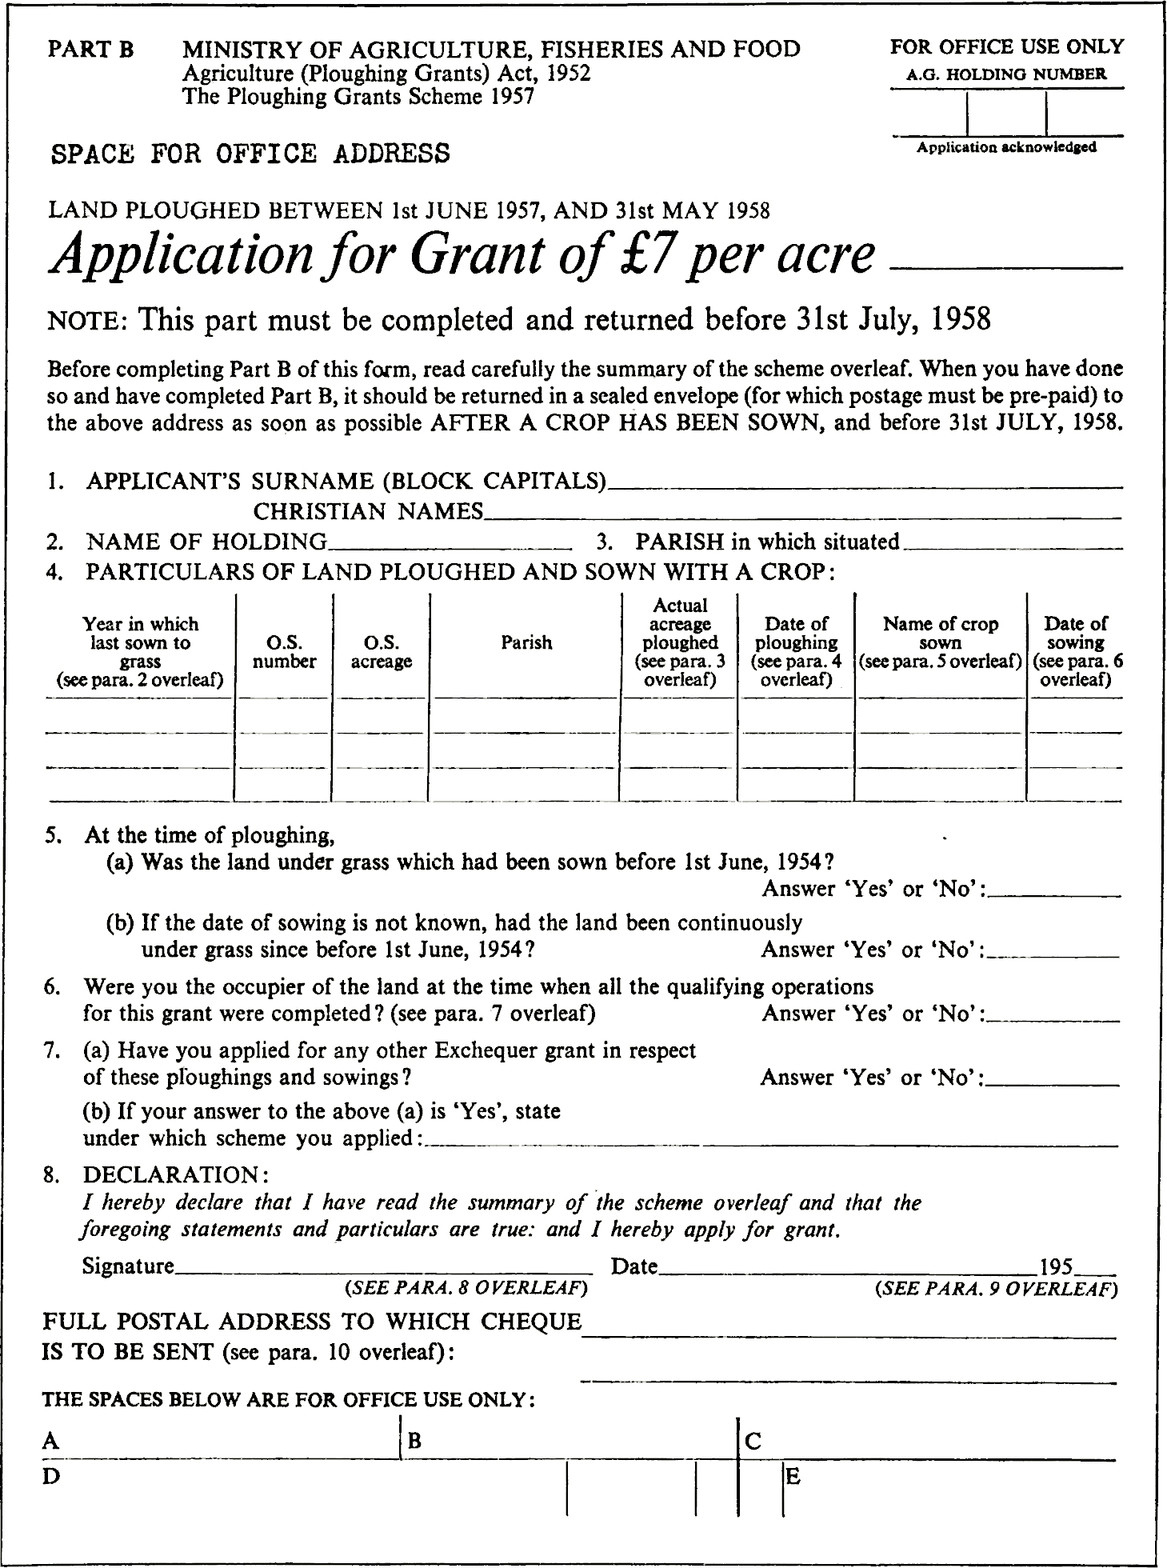 Form is the same as before with less use of caps. The title Application for Grant of £7 per acre is now visually the biggest thing on the page. The layout generally is better aligned.